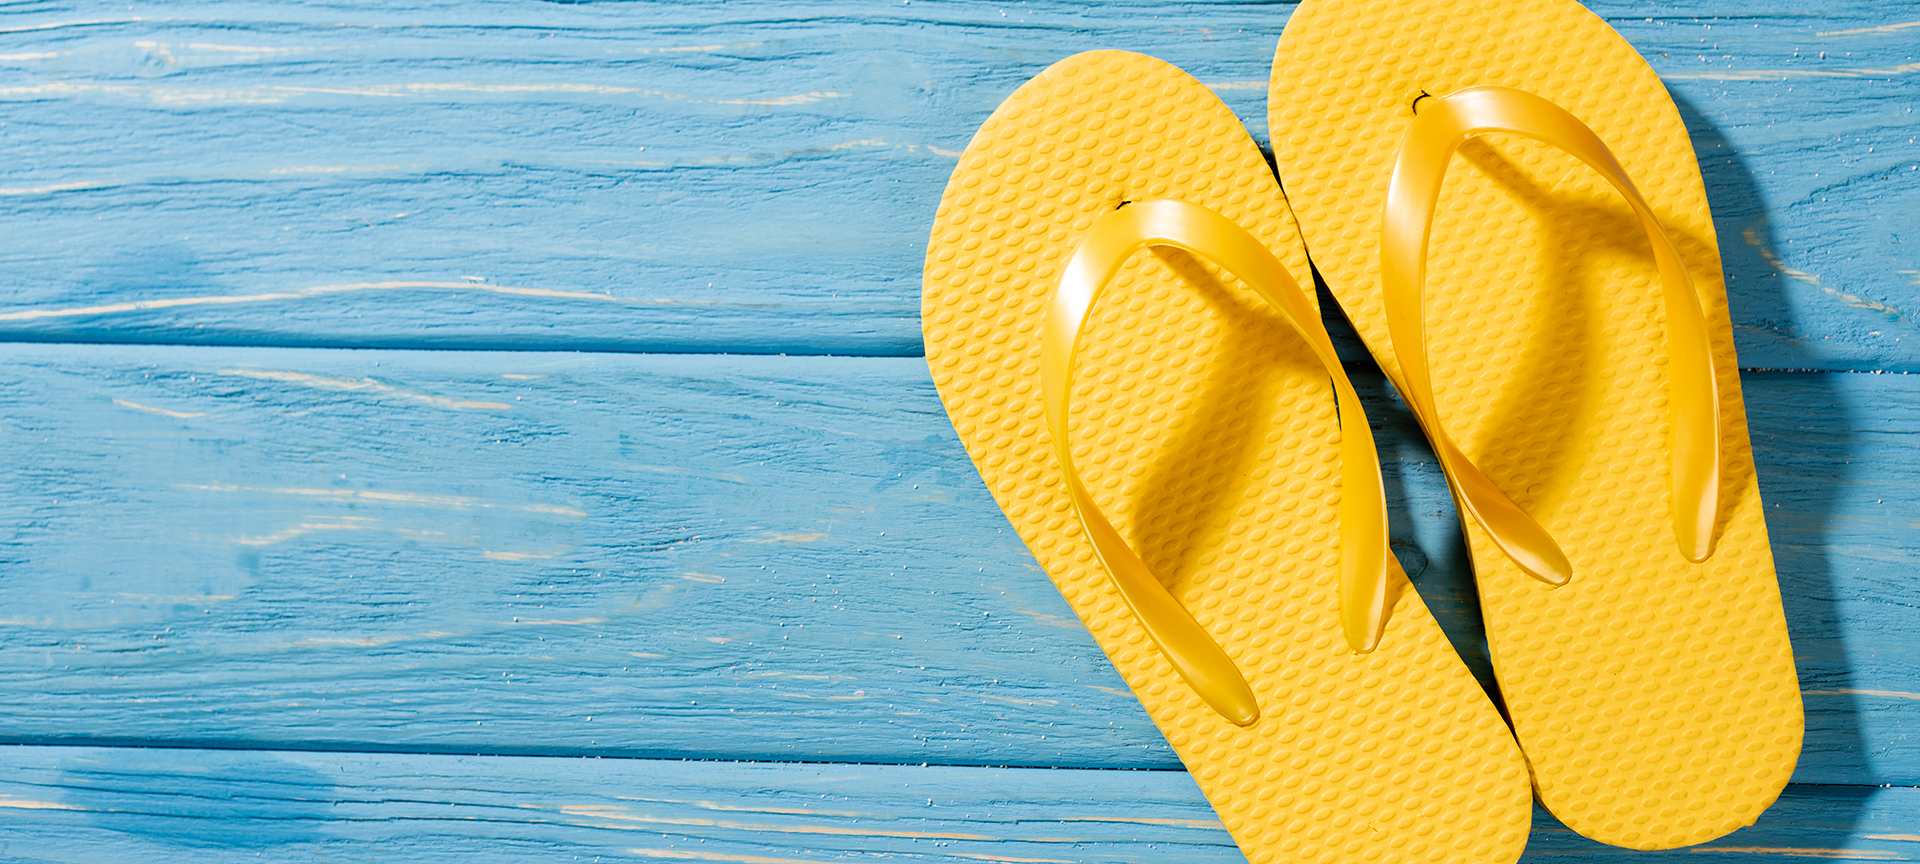 Flip flops are requisite Florida footwear that will take you from beach to restaurant in this laid-back state.